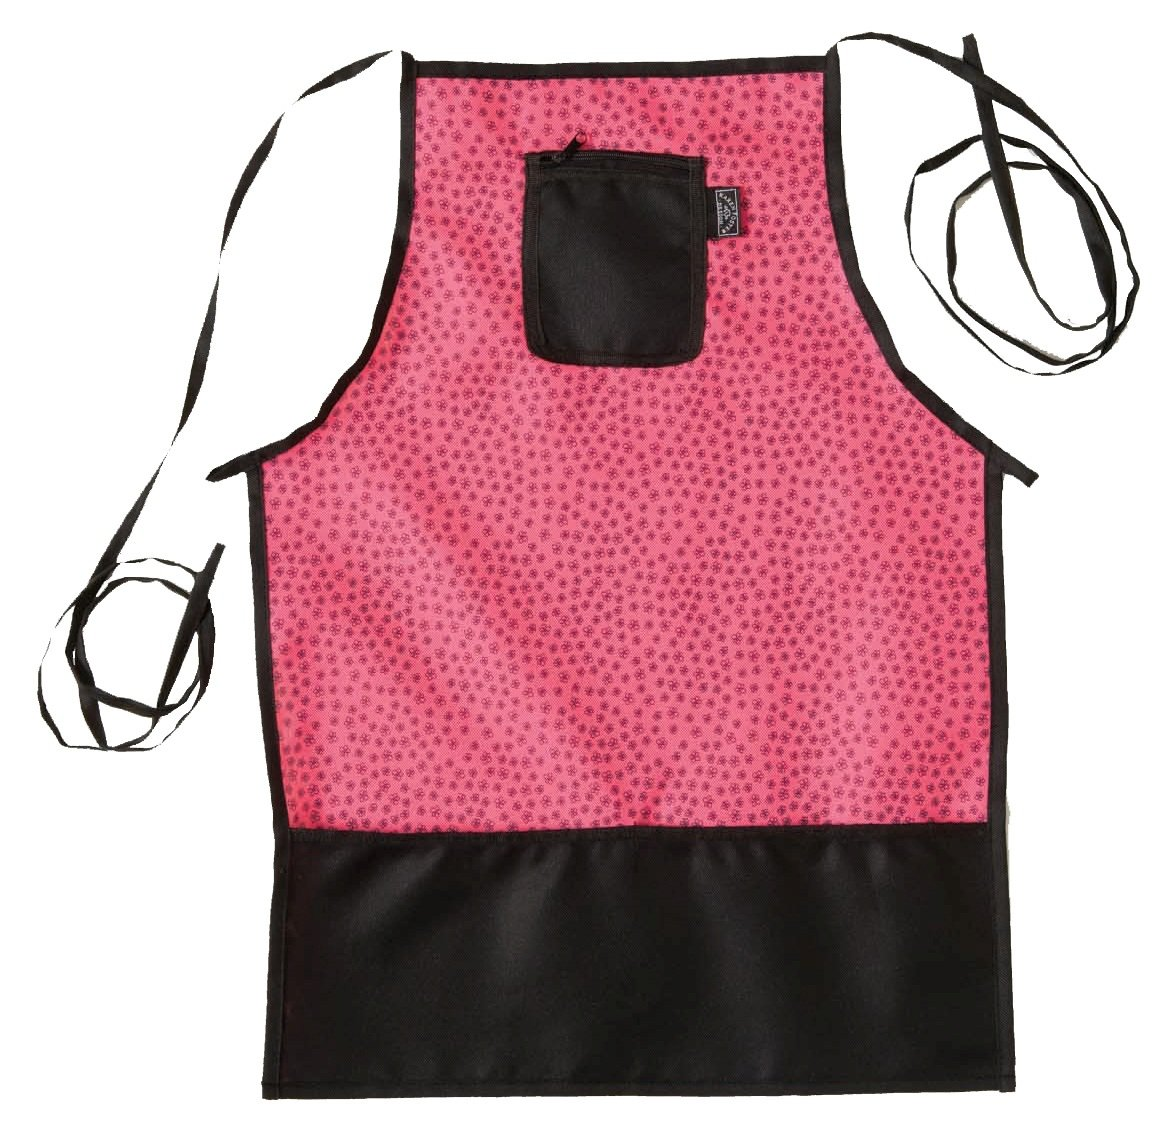 Karen Foster Design Water Resistant Lil Crafter Cover Apron with Pockets 2052